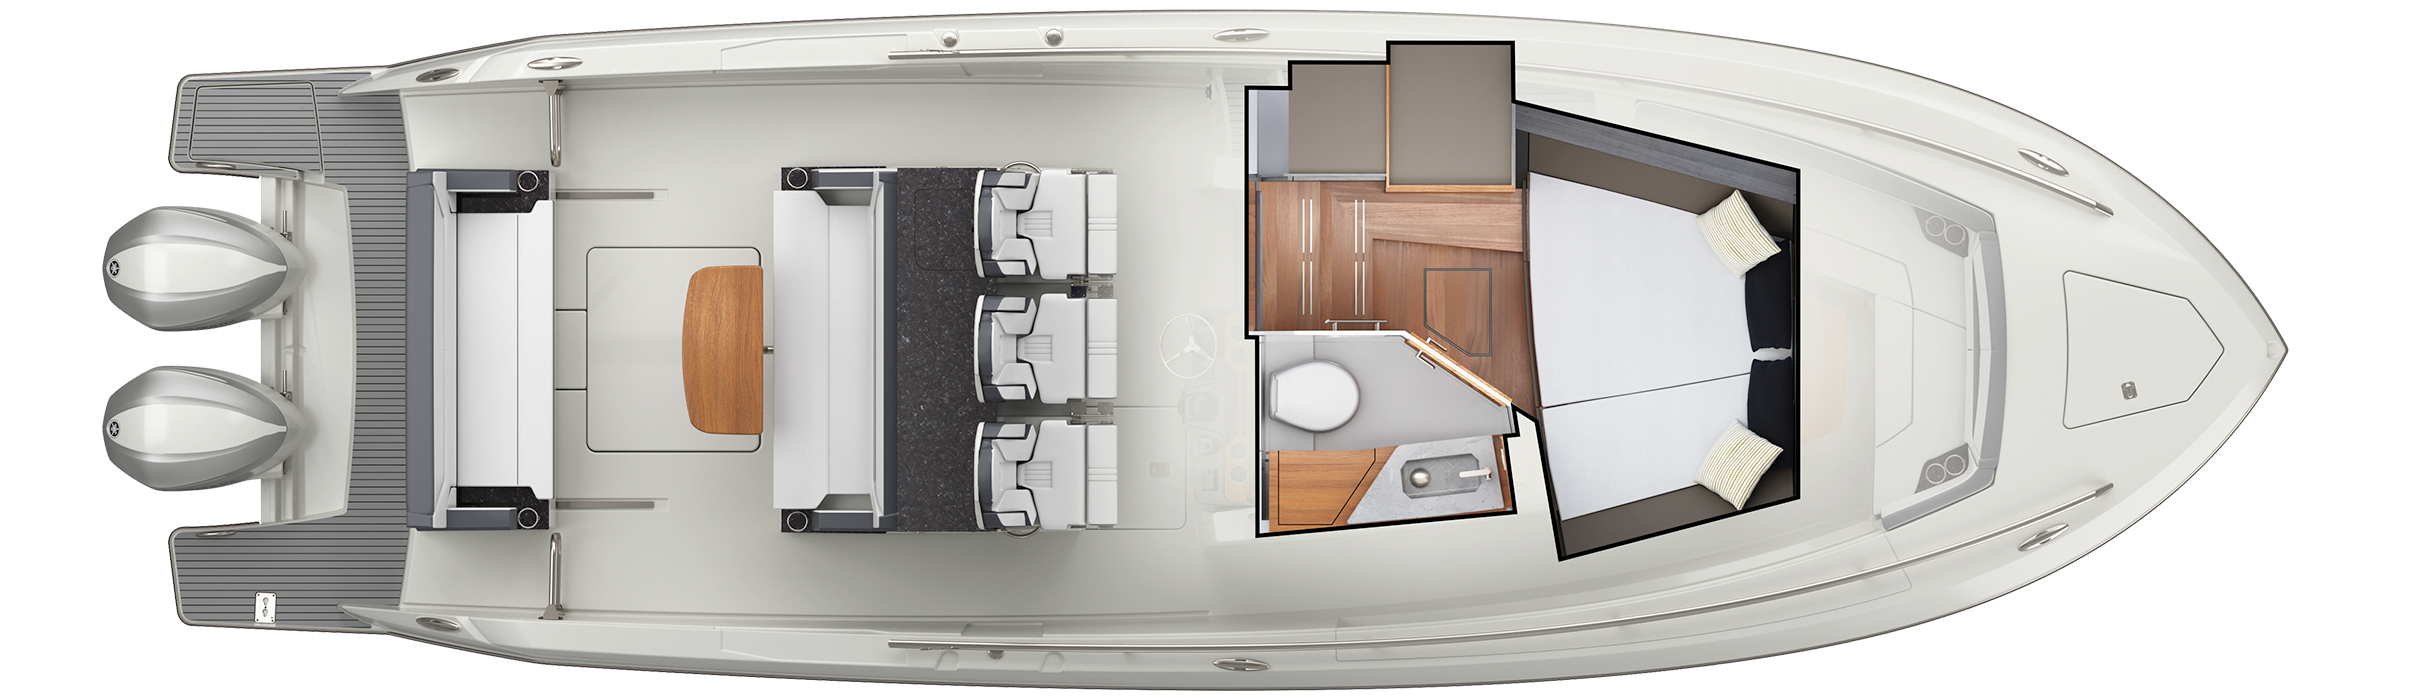 34 LS Interior Plan